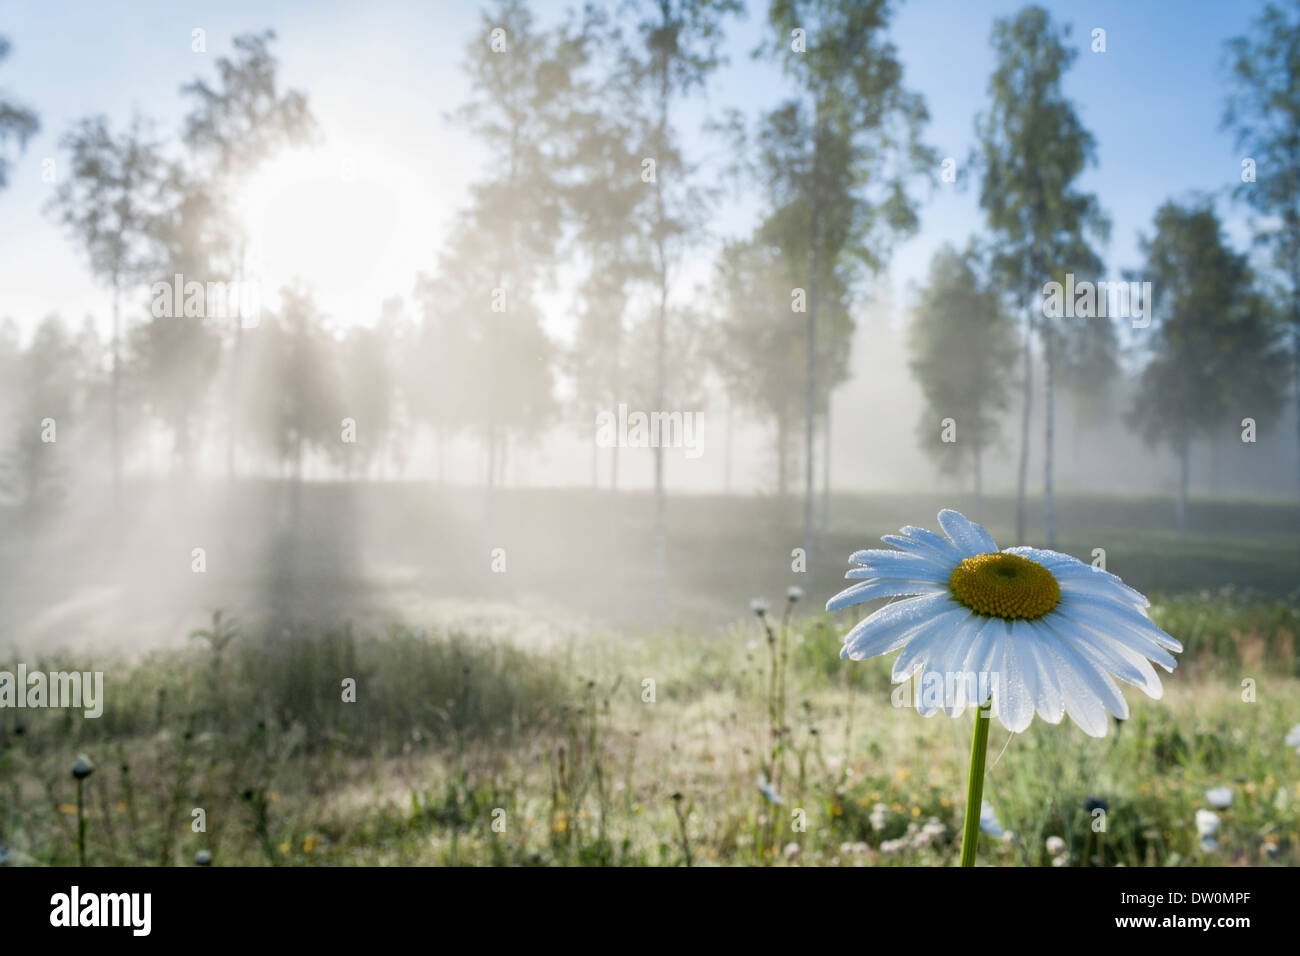 Morning Sun Shining Through Mist and Trees onto a Meadow with a Daisy in the Foreground - Stock Image